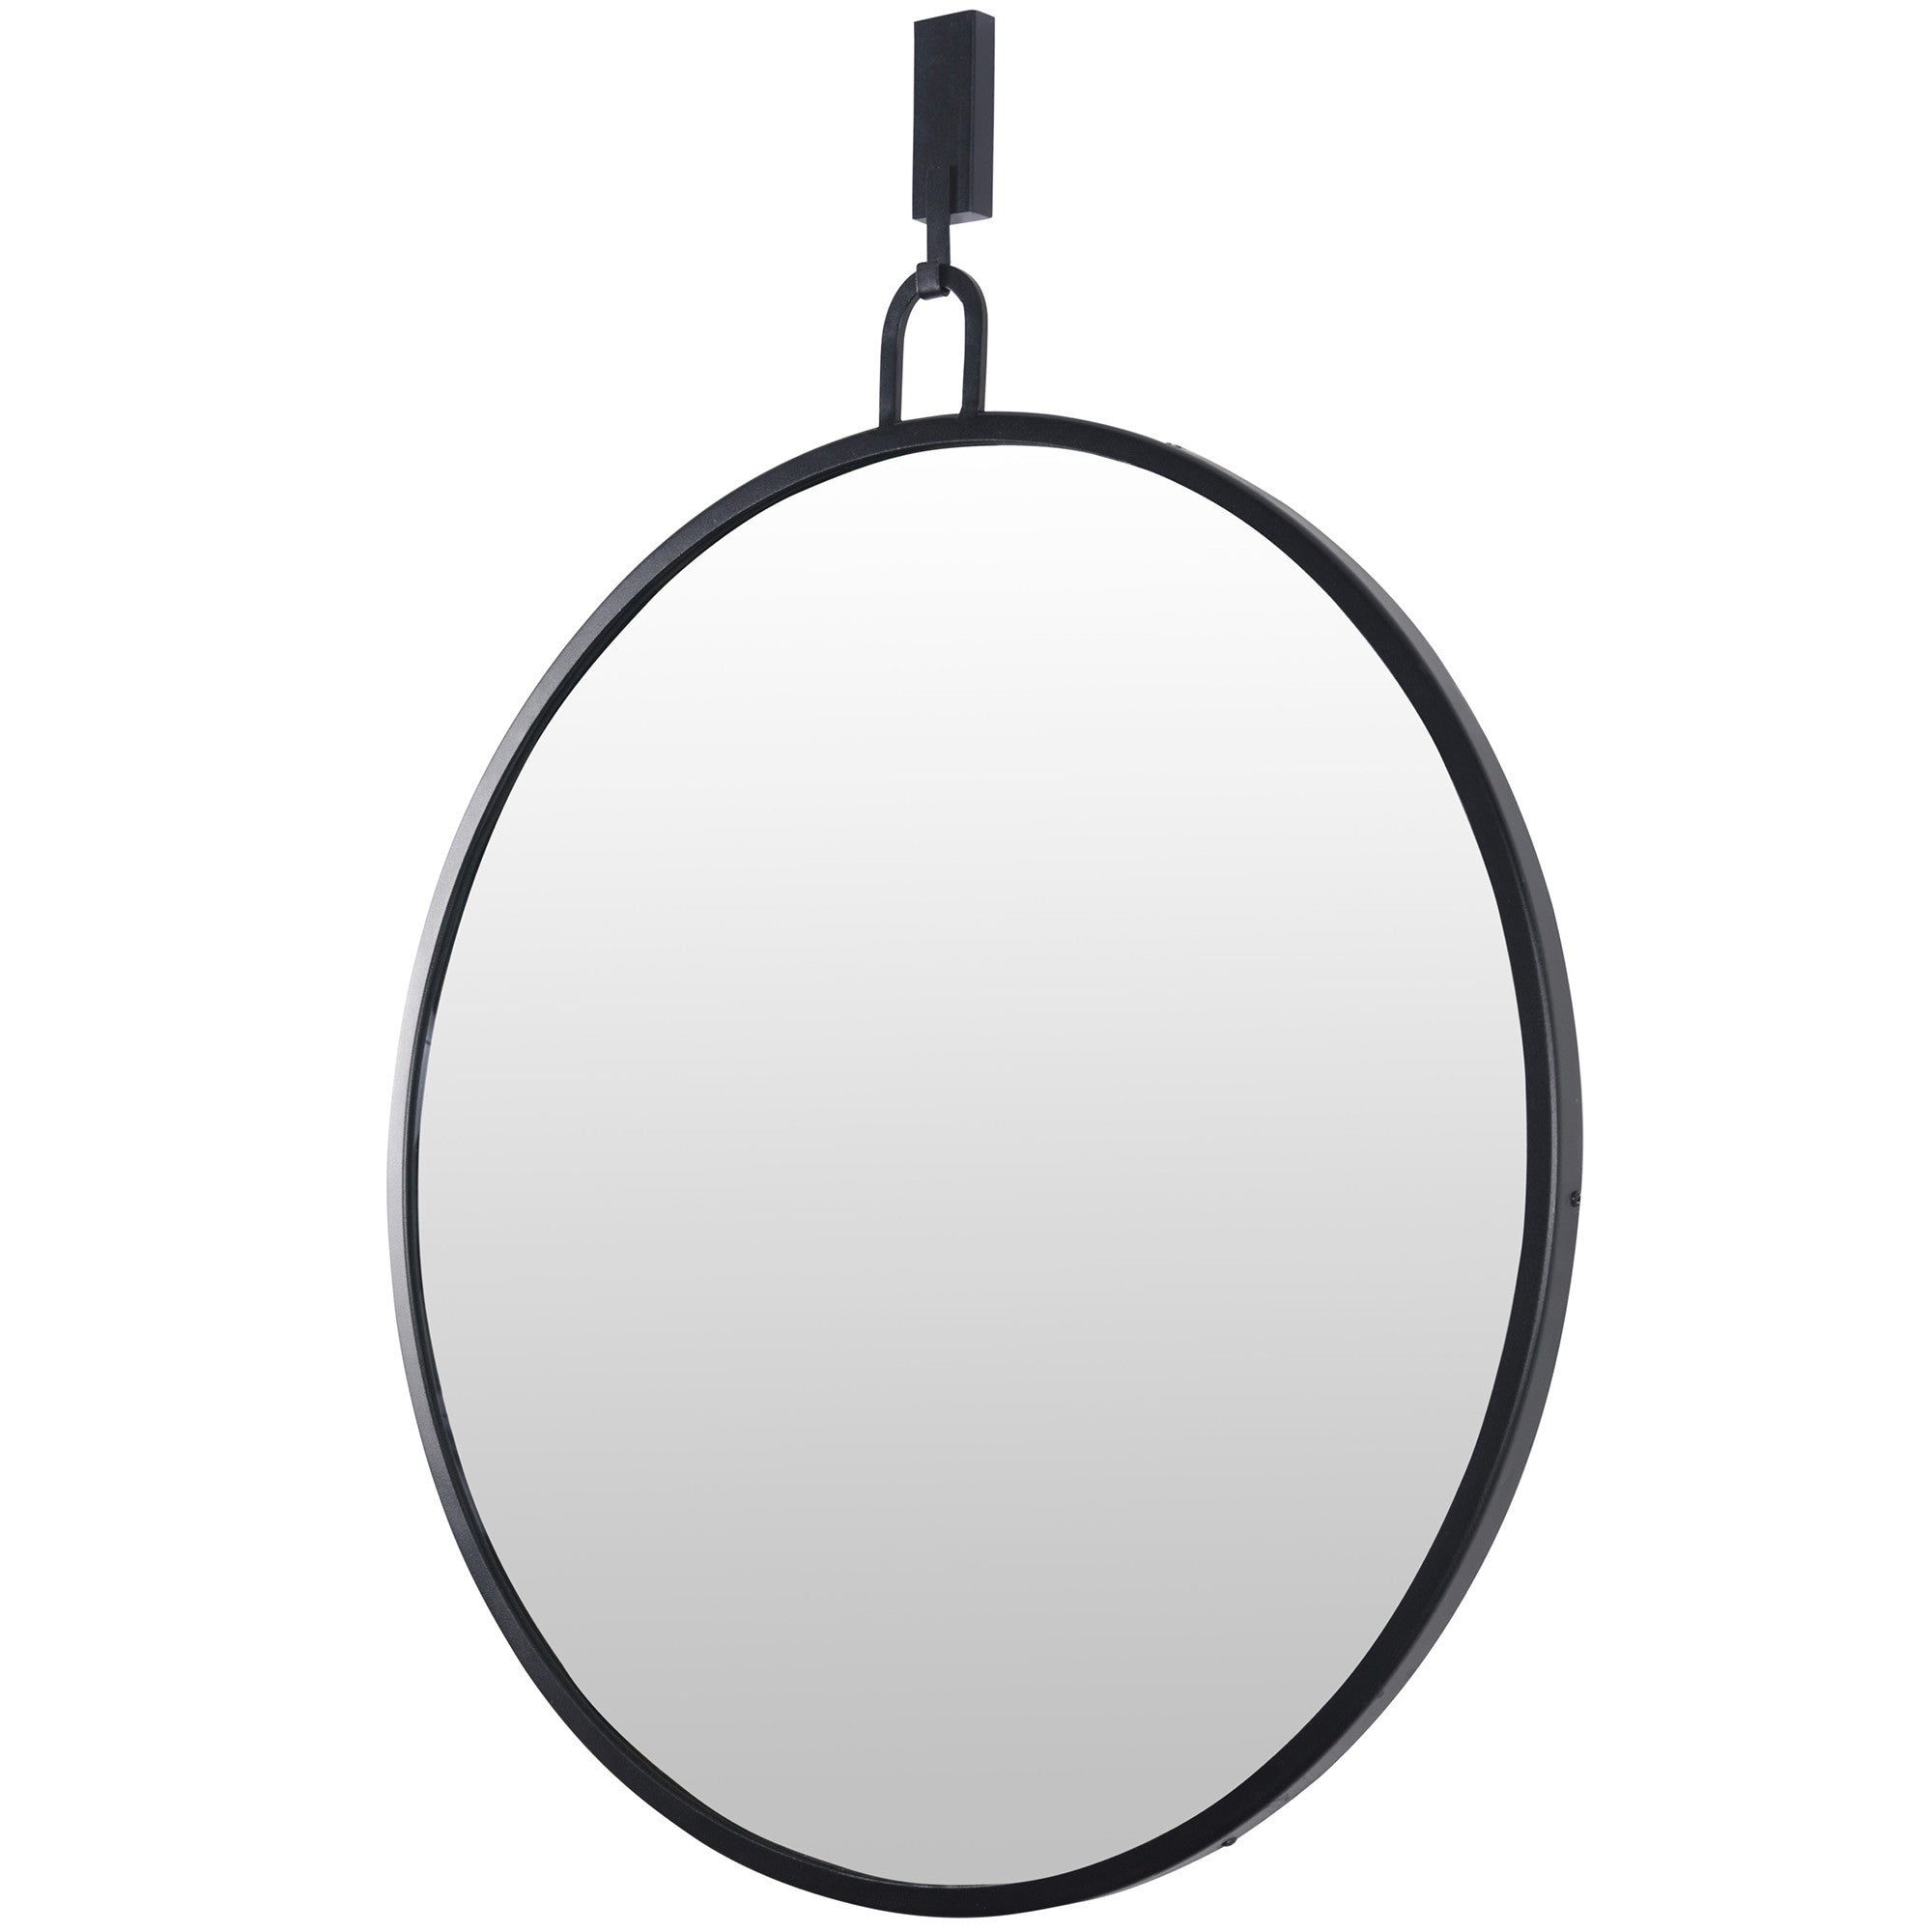 Stopwatch 30-in Round Accent Mirror - Black - 407A01BL